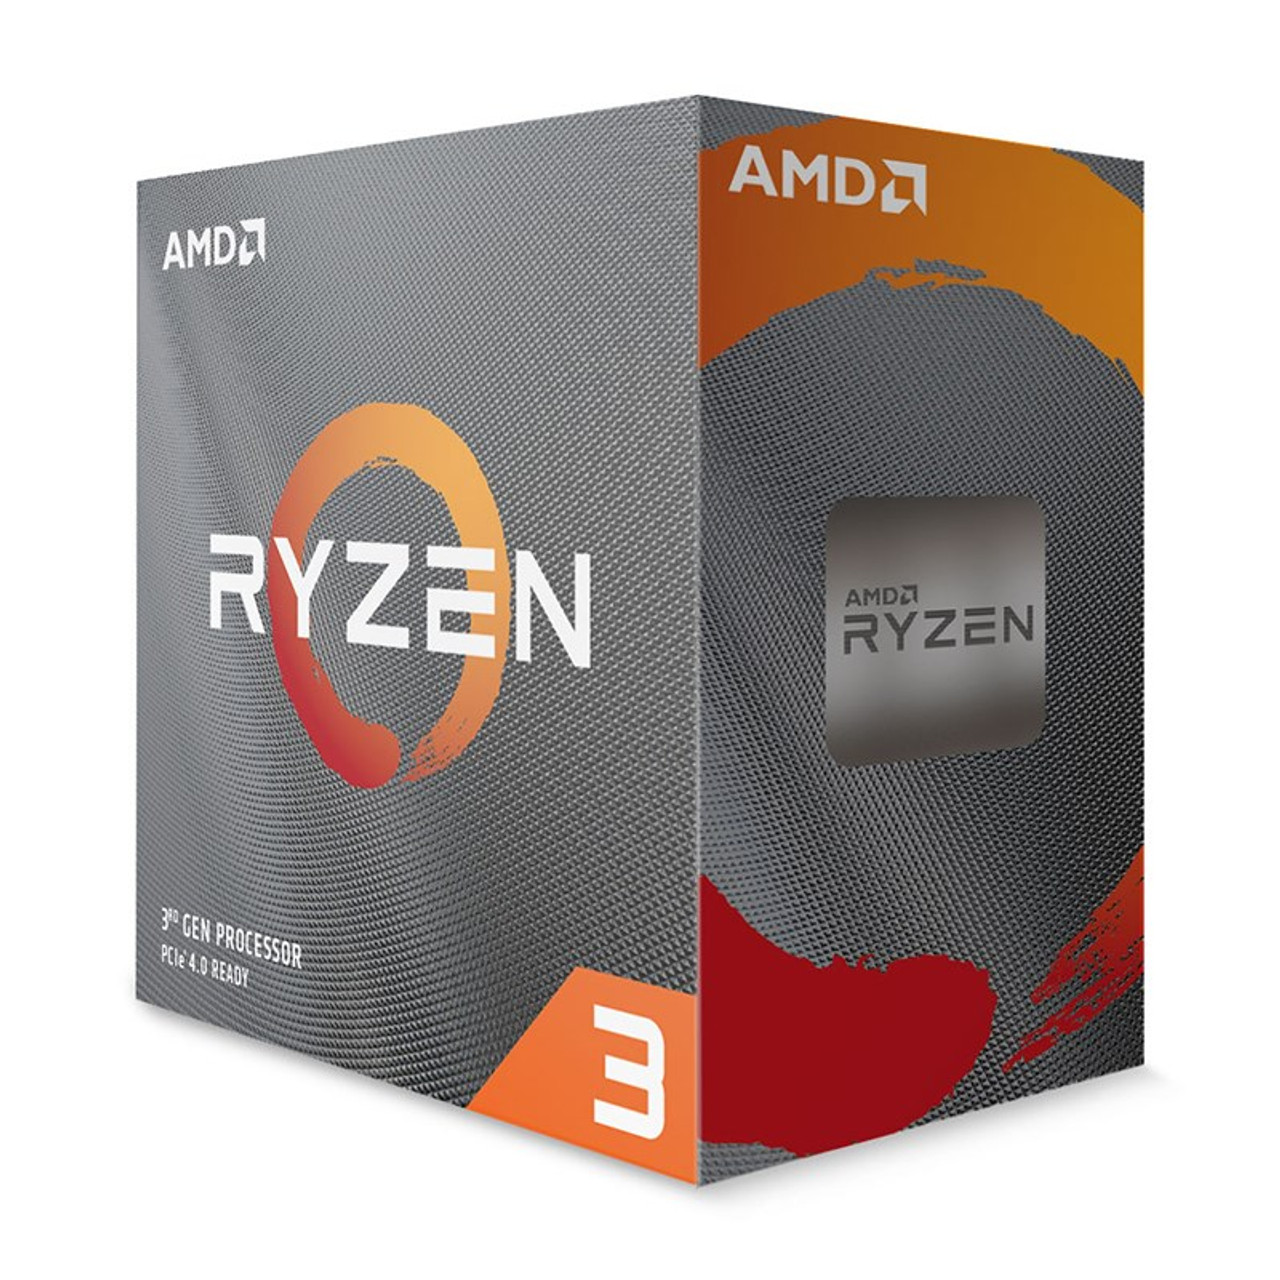 Image for AMD Ryzen 3 3100 4 Core Socket AM4 3.6GHz CPU Processor + Wraith Stealth Cooler CX Computer Superstore